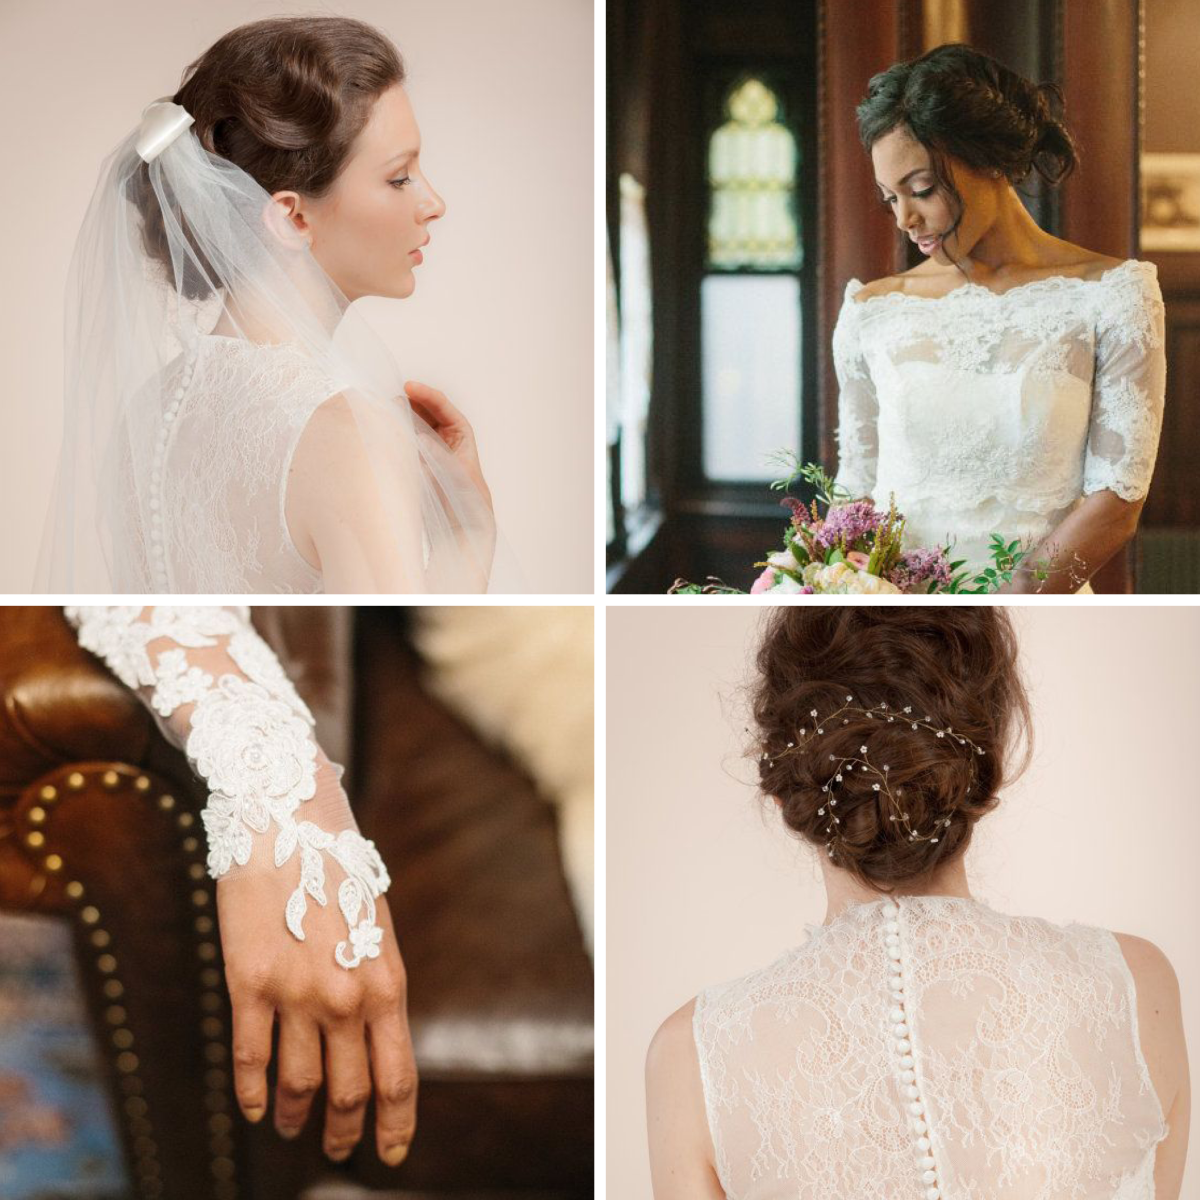 1. Bow Veil, $149+ / 2. Bridal Cover, $330 / 3. Lace Bridal Gloves, $129 / 4. Hair Vine, $169